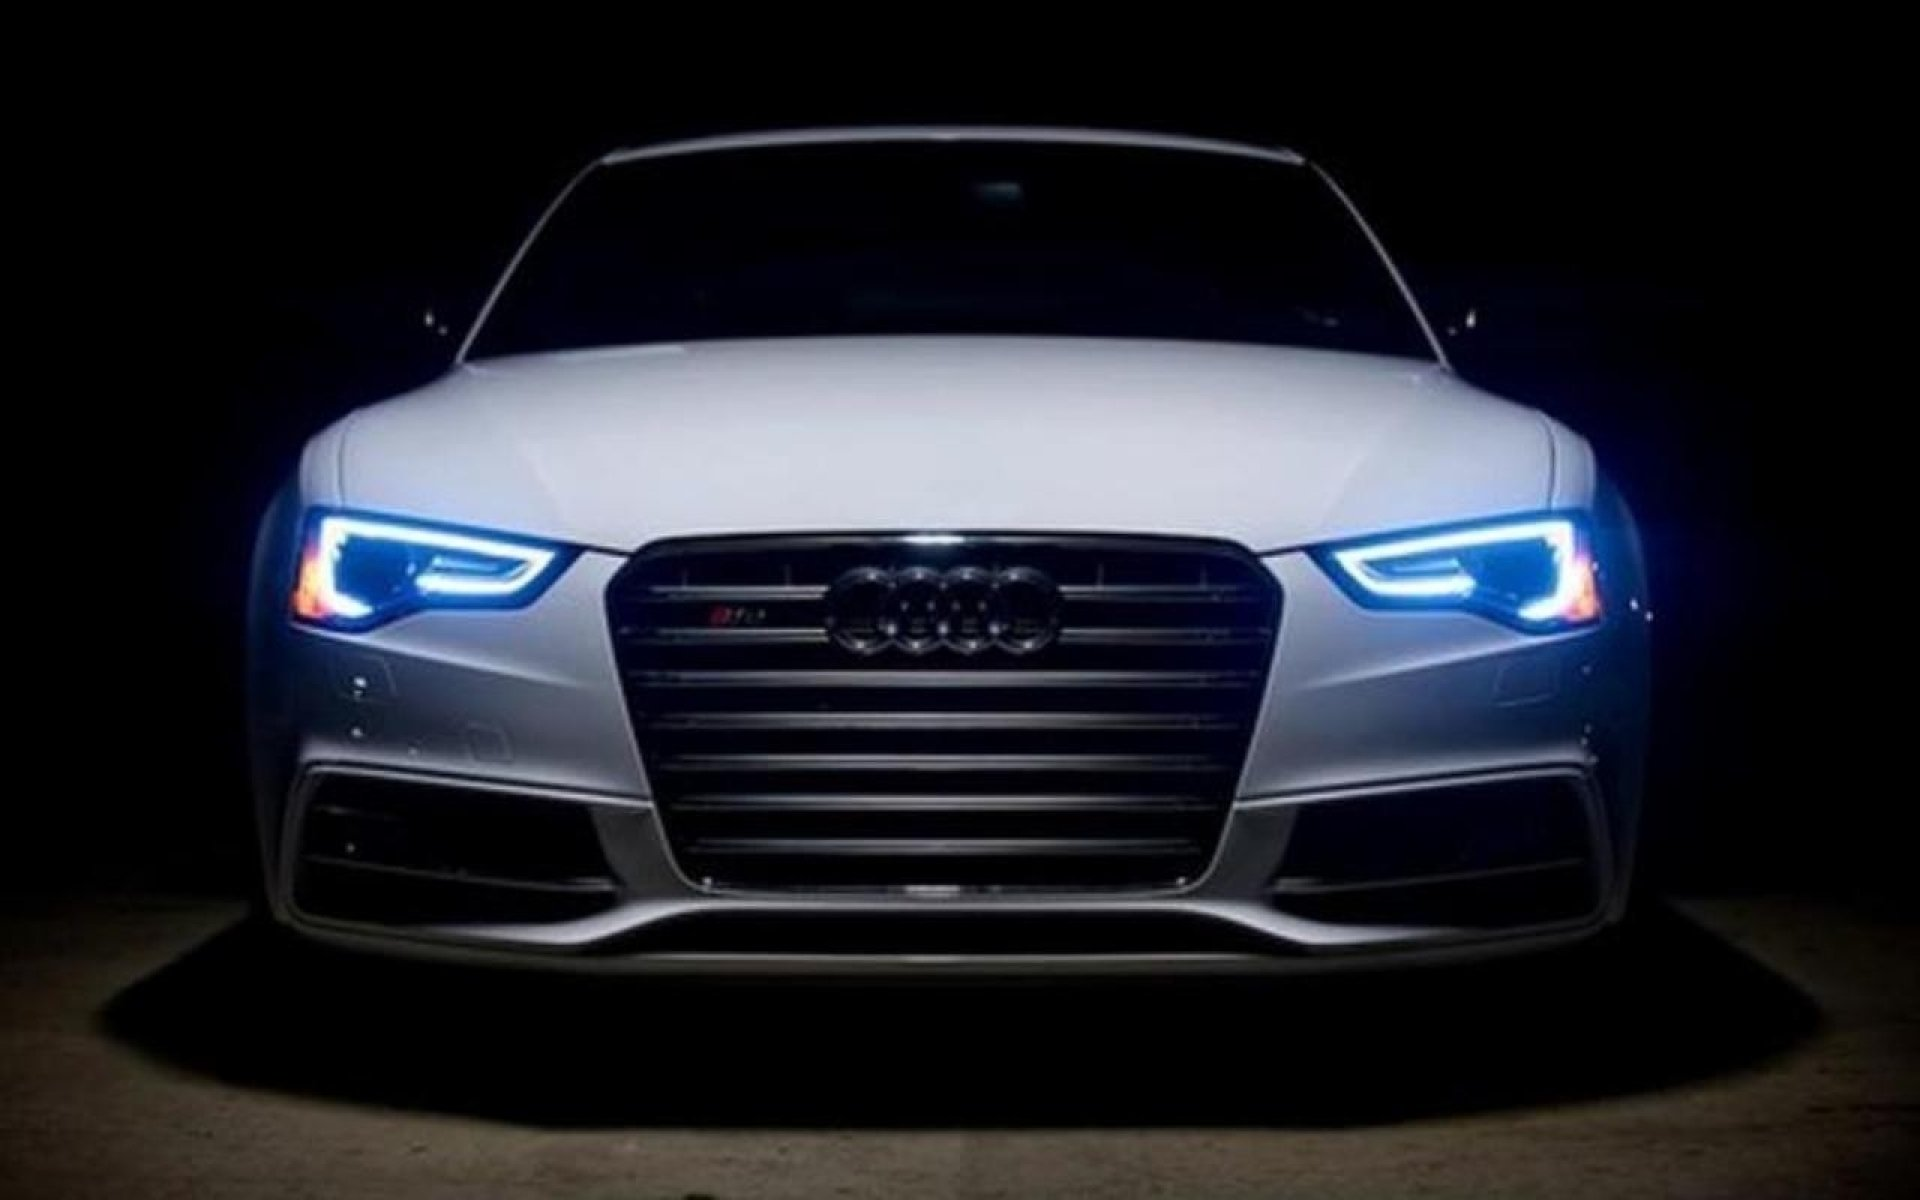 Audi s5 hd wallpaper background image 1920x1200 id 378299 wallpaper abyss - Car wallpapers for galaxy s5 ...